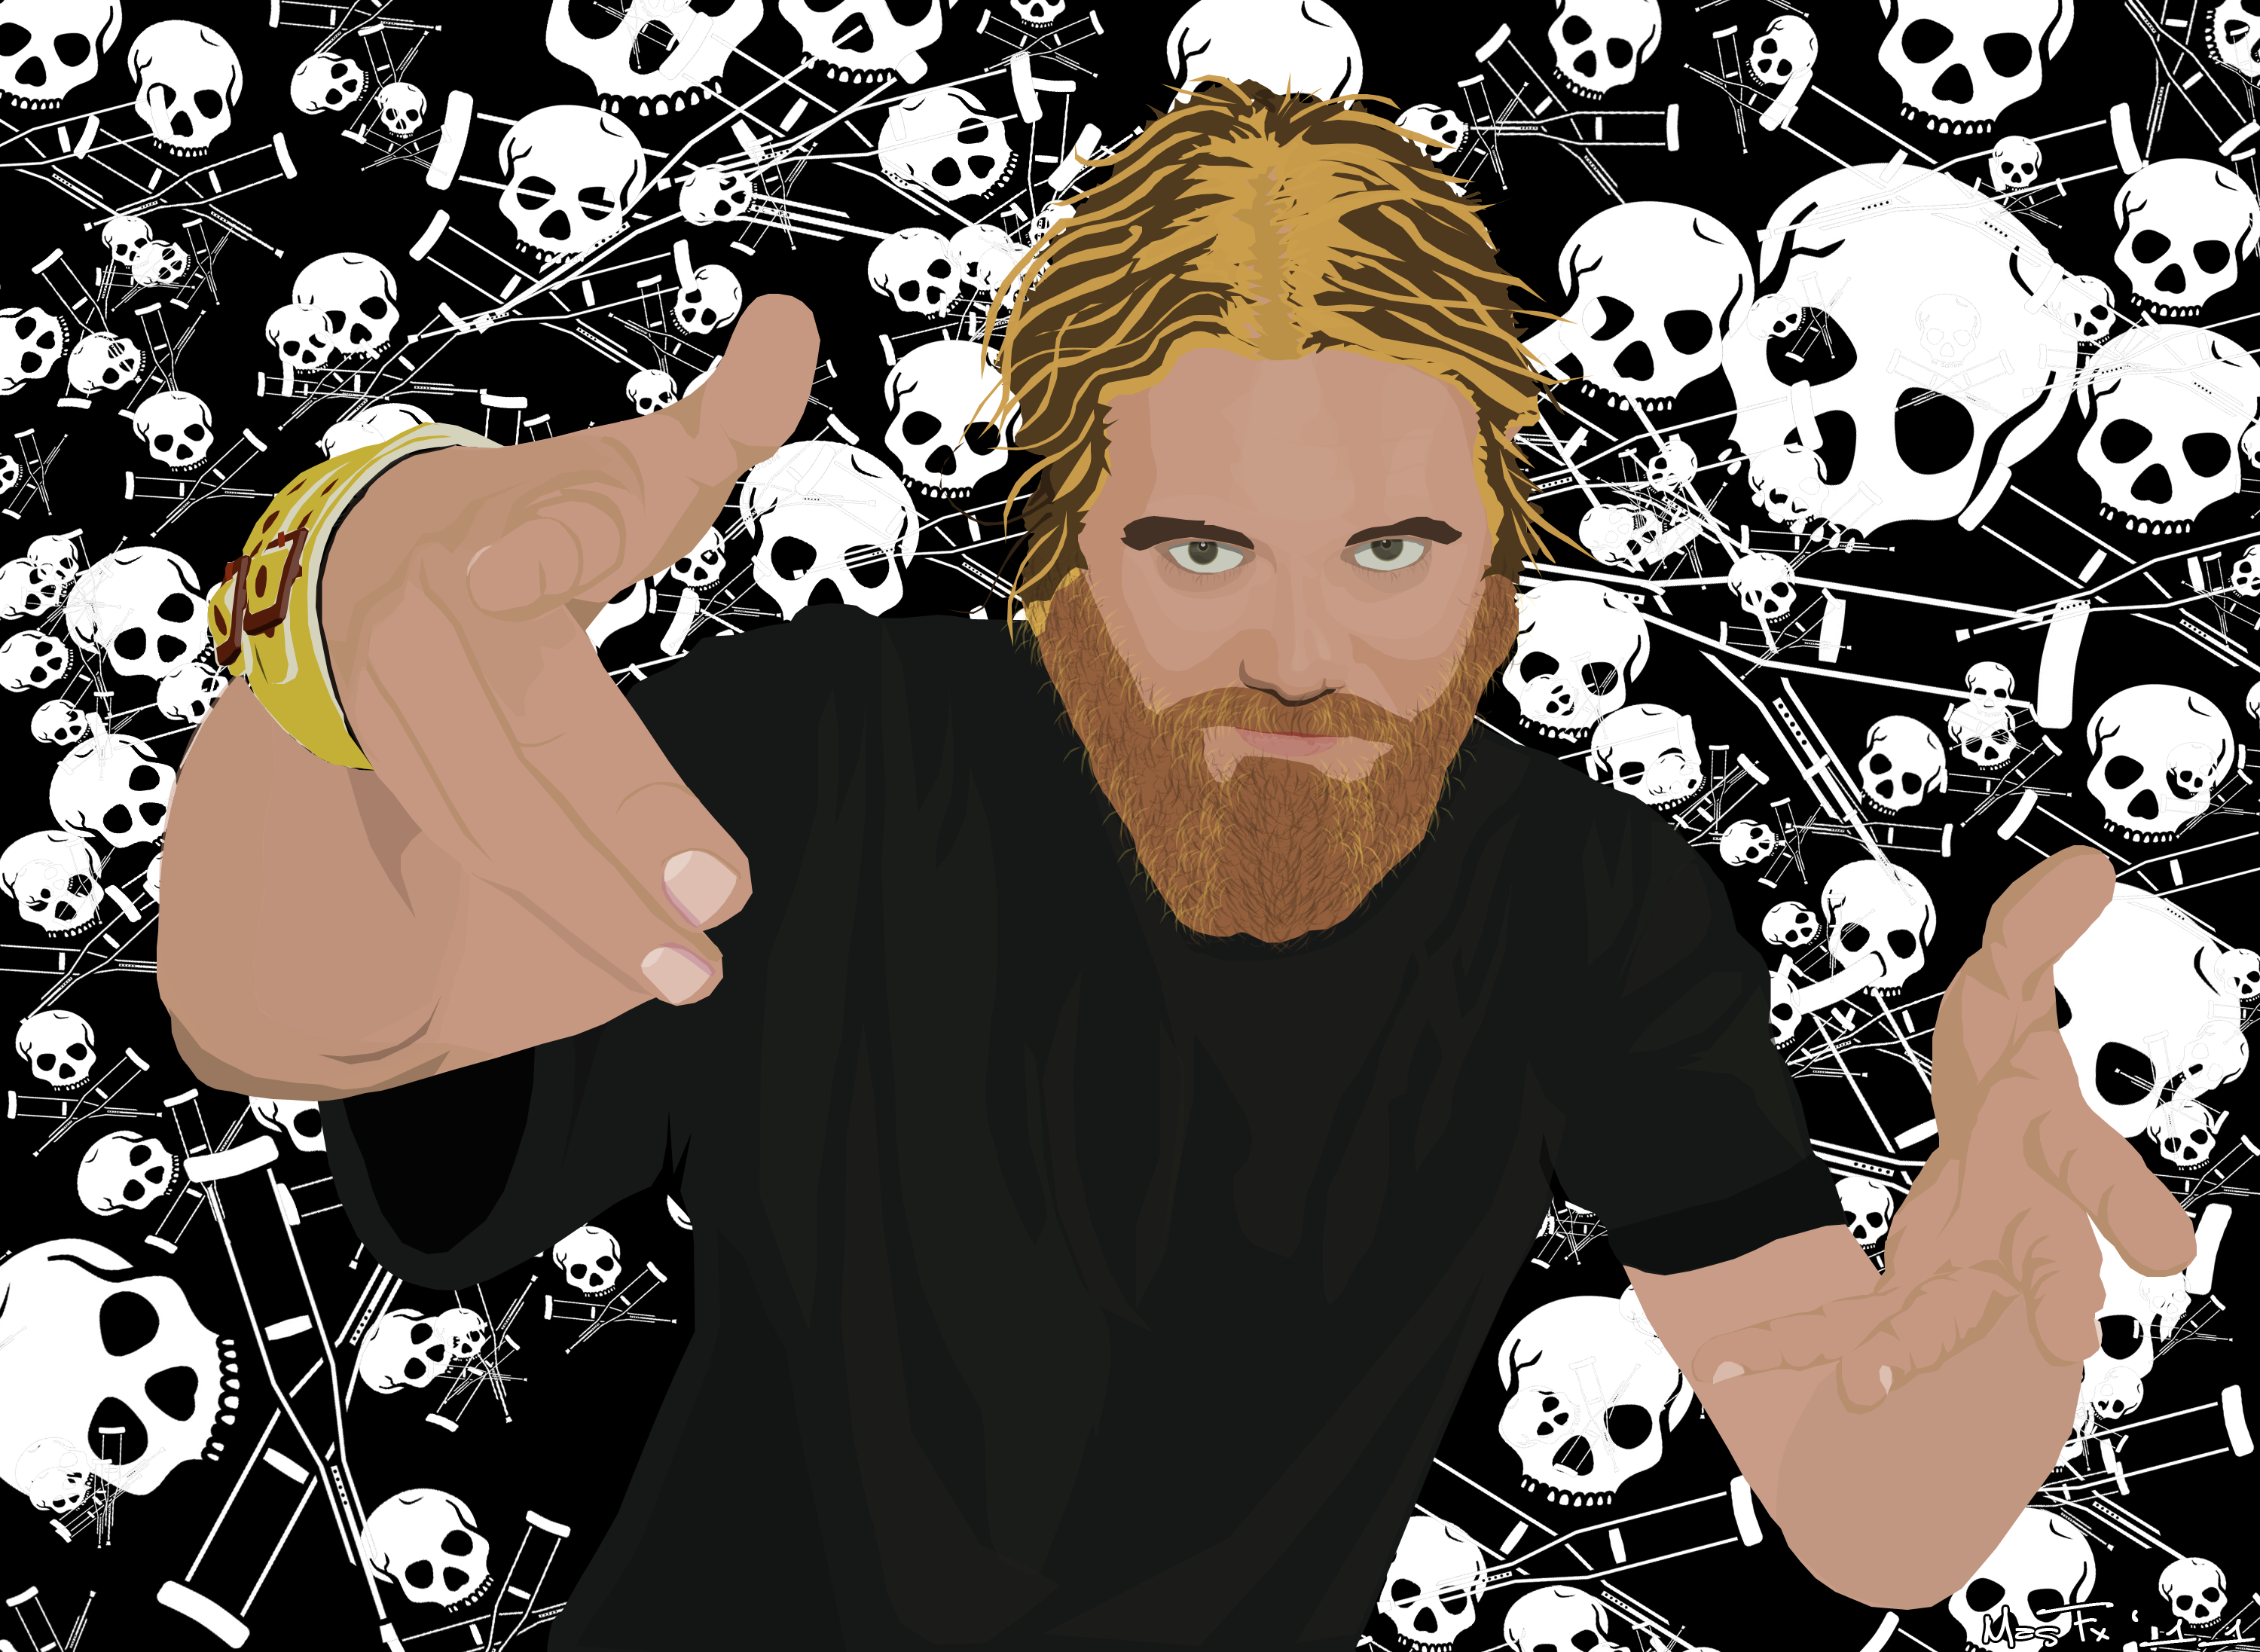 Ryan Dunn Tribute No Text By Masfx On Deviantart